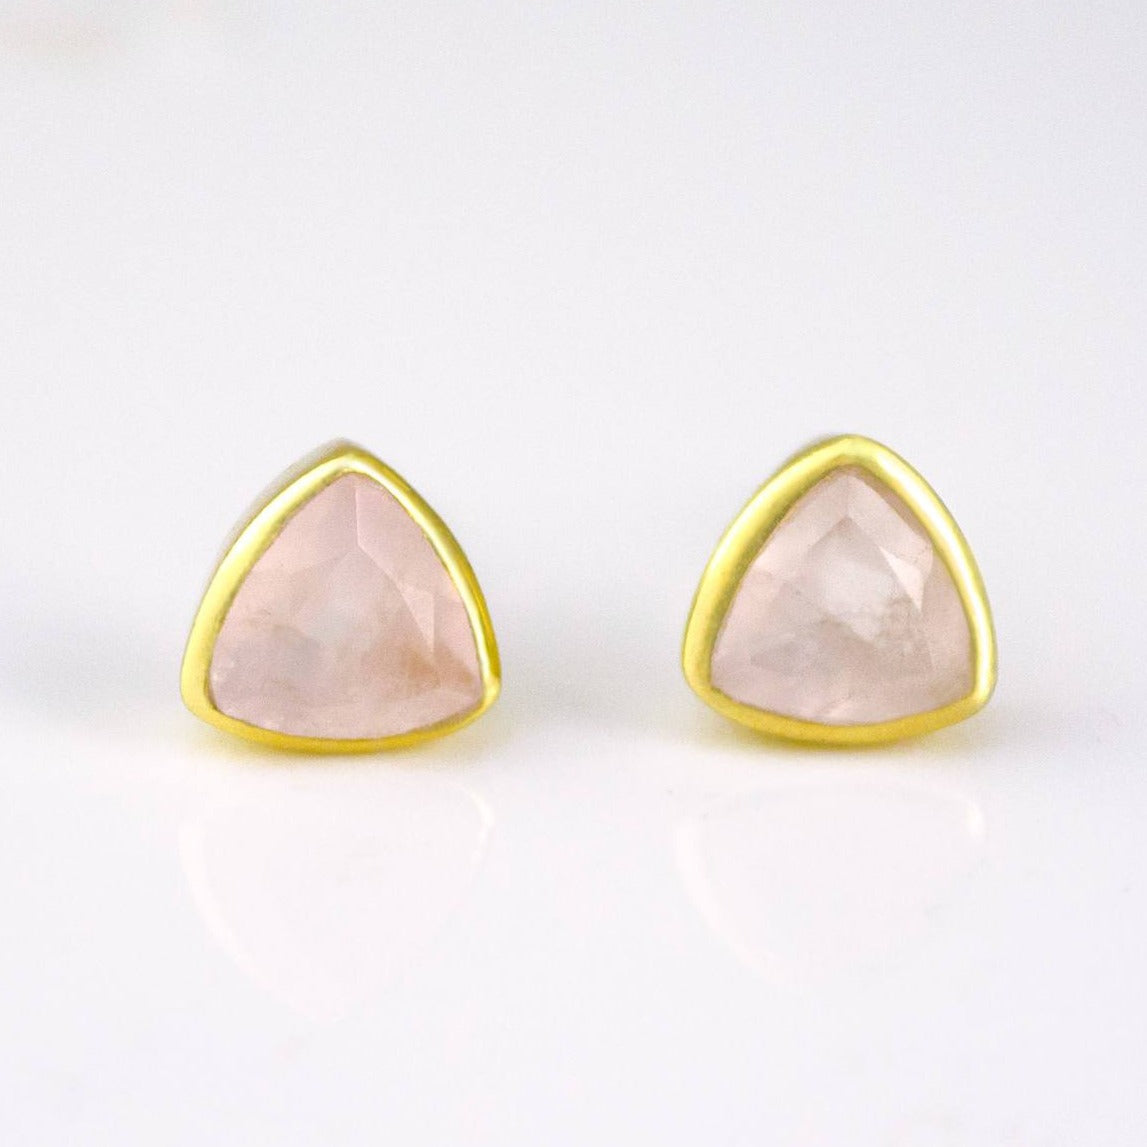 gold products earrings minimalist hammered simple pebble collections gift everyday studs post il stud fullxfull